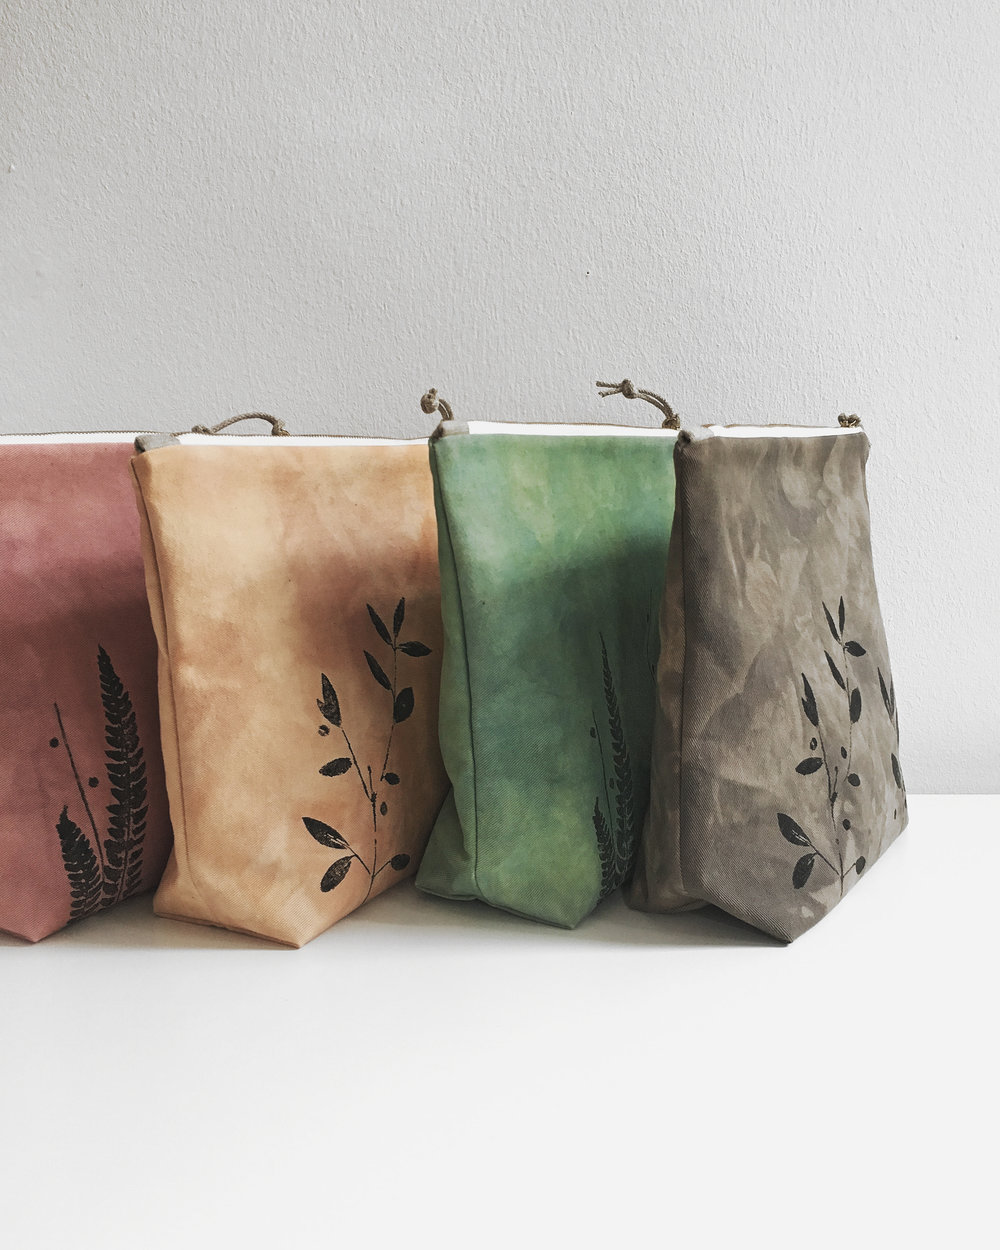 Madder, onion, woad, acorns dyed cotton project bags